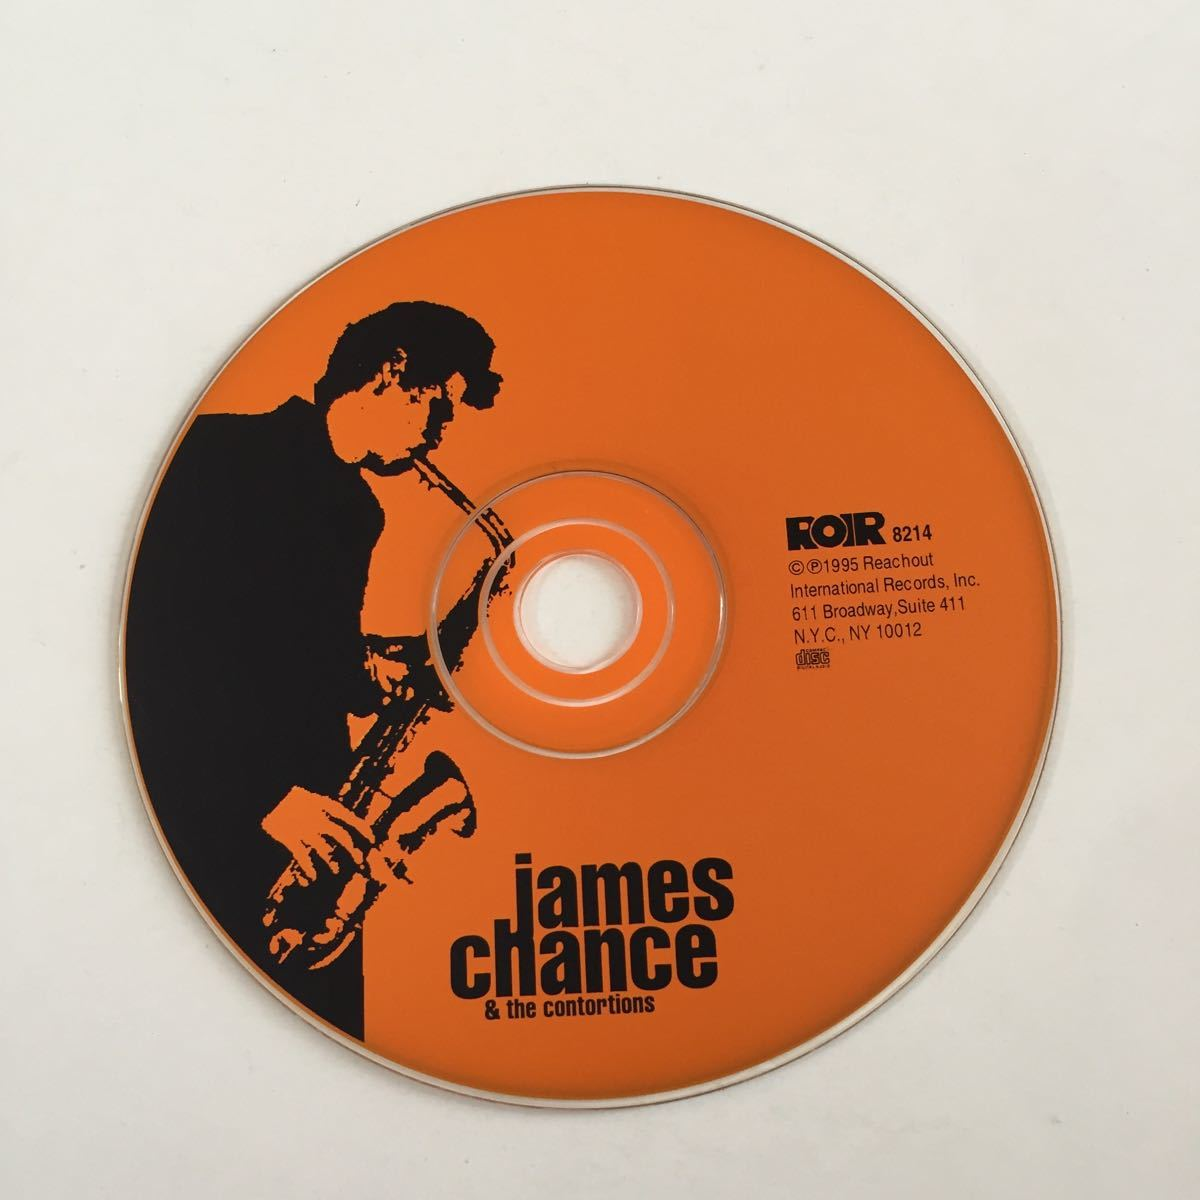 james chance & the contortions ジェイムス・チャンス コントーションズ lost chance ライヴ盤 NEWYORK PUNK NO WAVE ノー・ニューヨーク